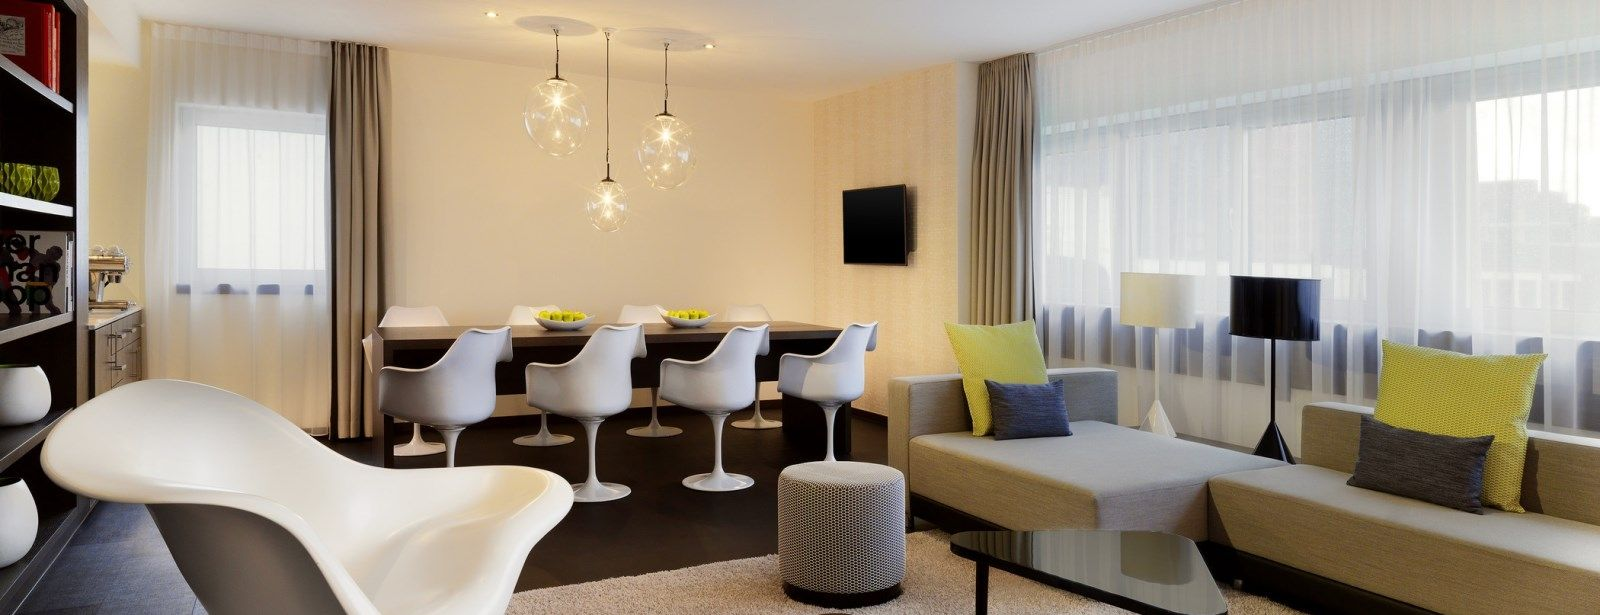 Living Room of the Skyline Suite at Le Méridien Hotel Frankfurt